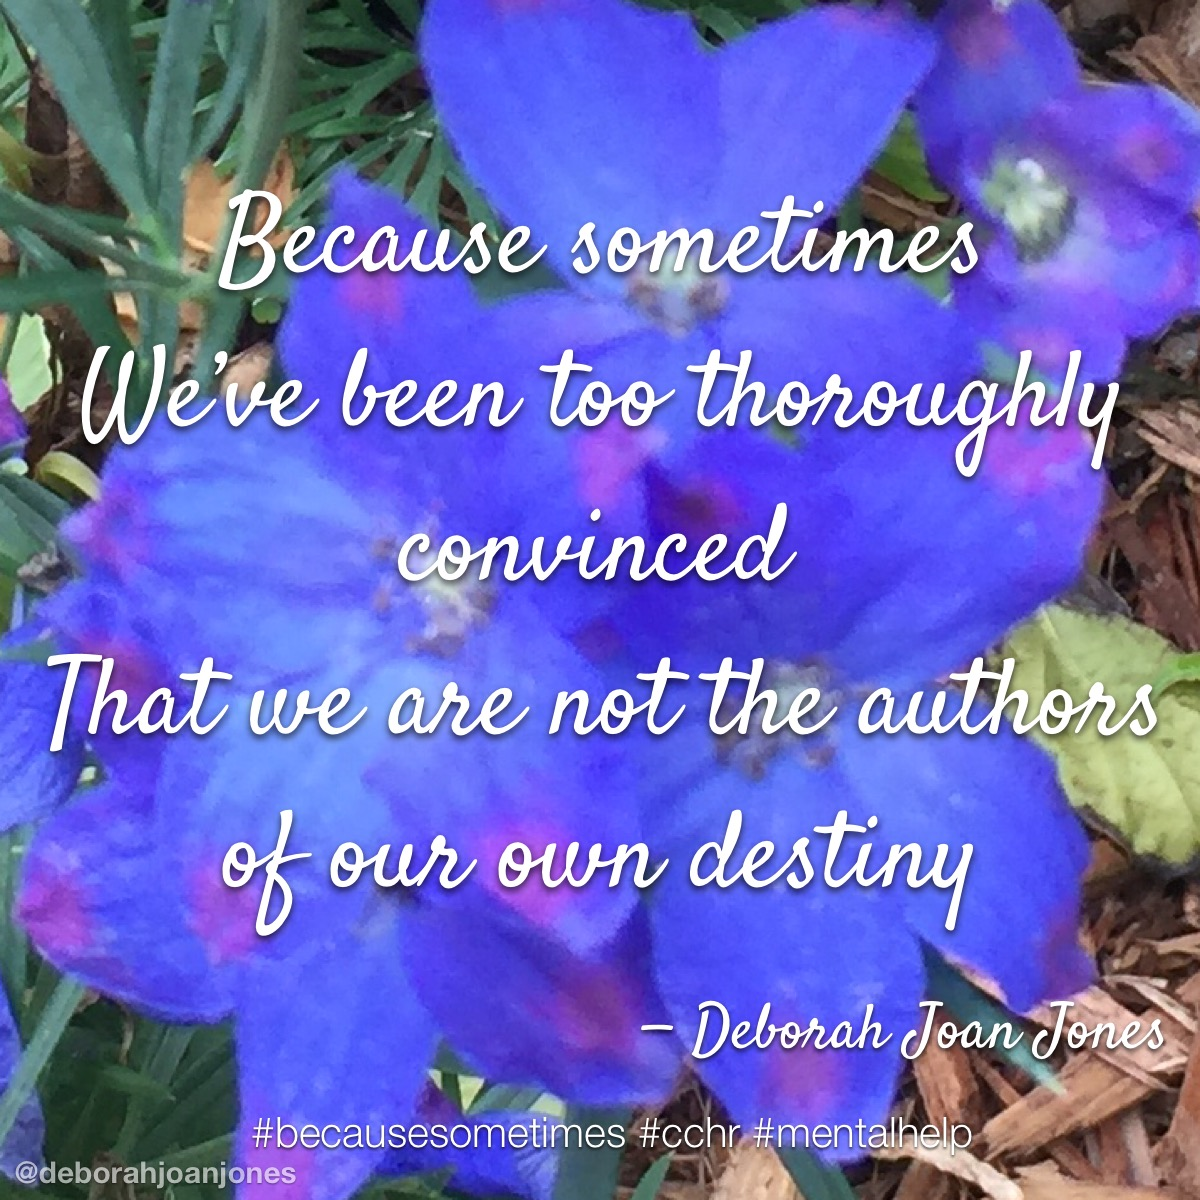 We've been too thoroughly convinced that we are not the authors of our own destiny.